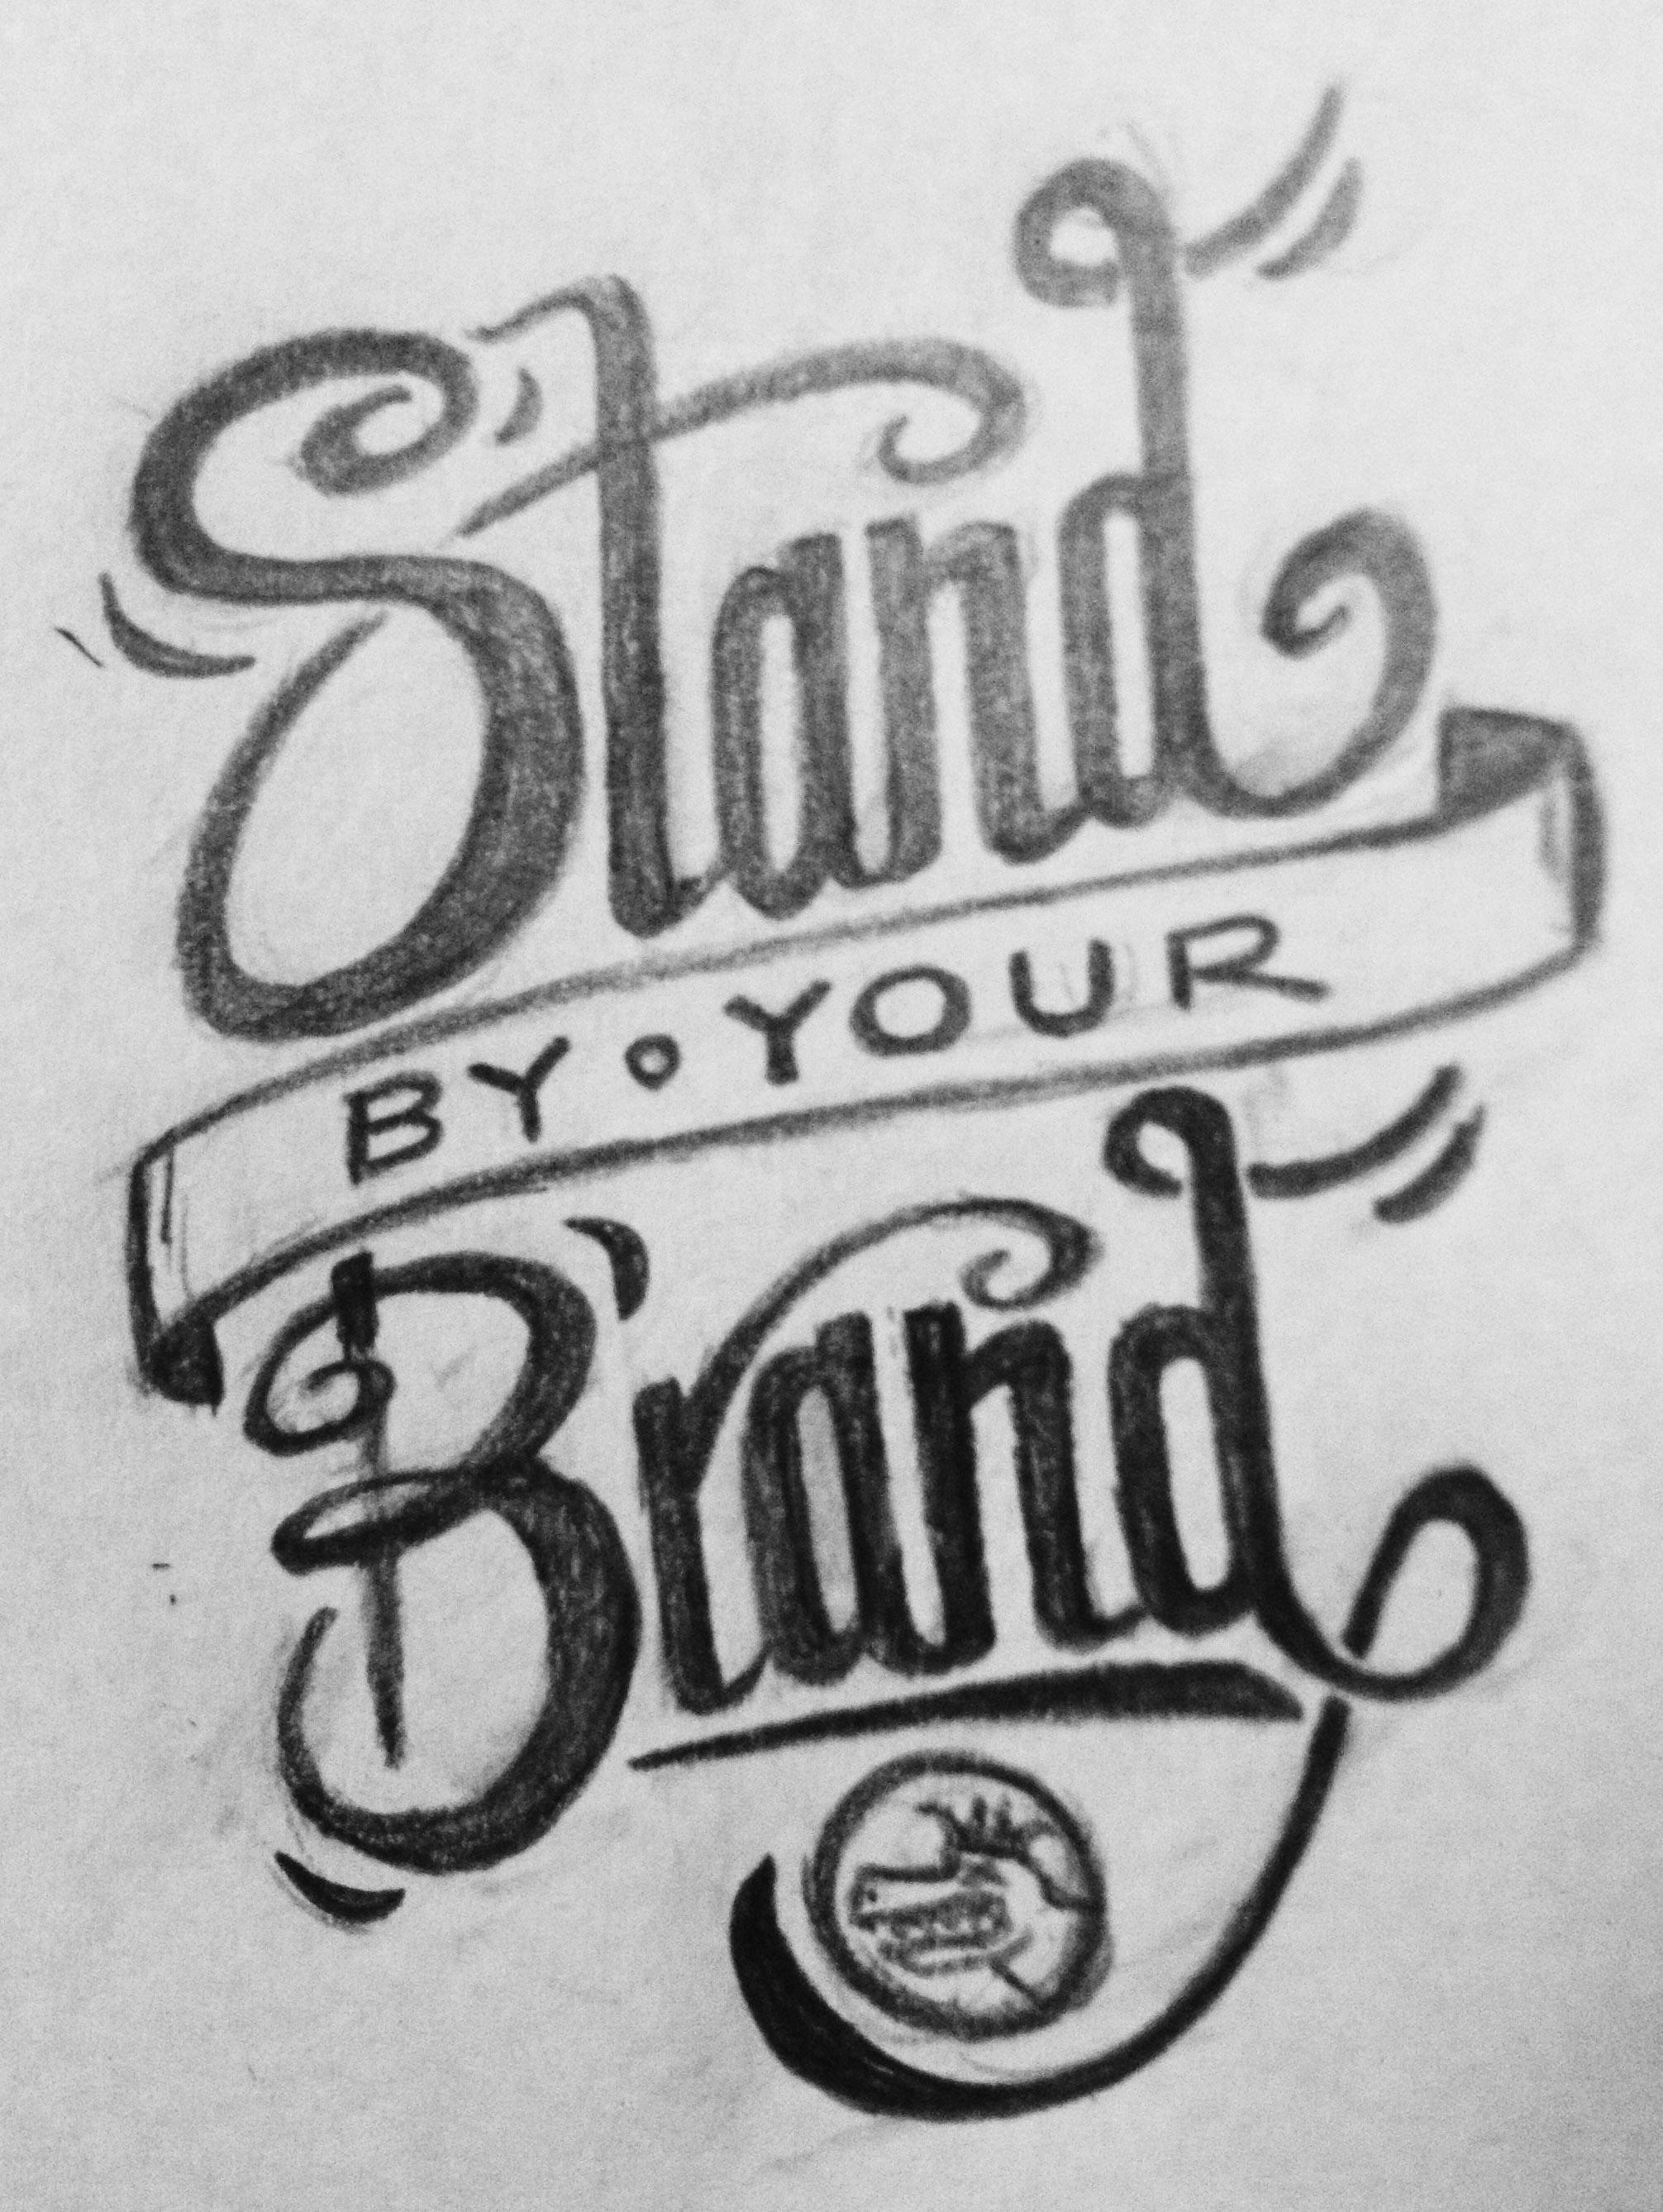 Stand By Your Brand - image 2 - student project